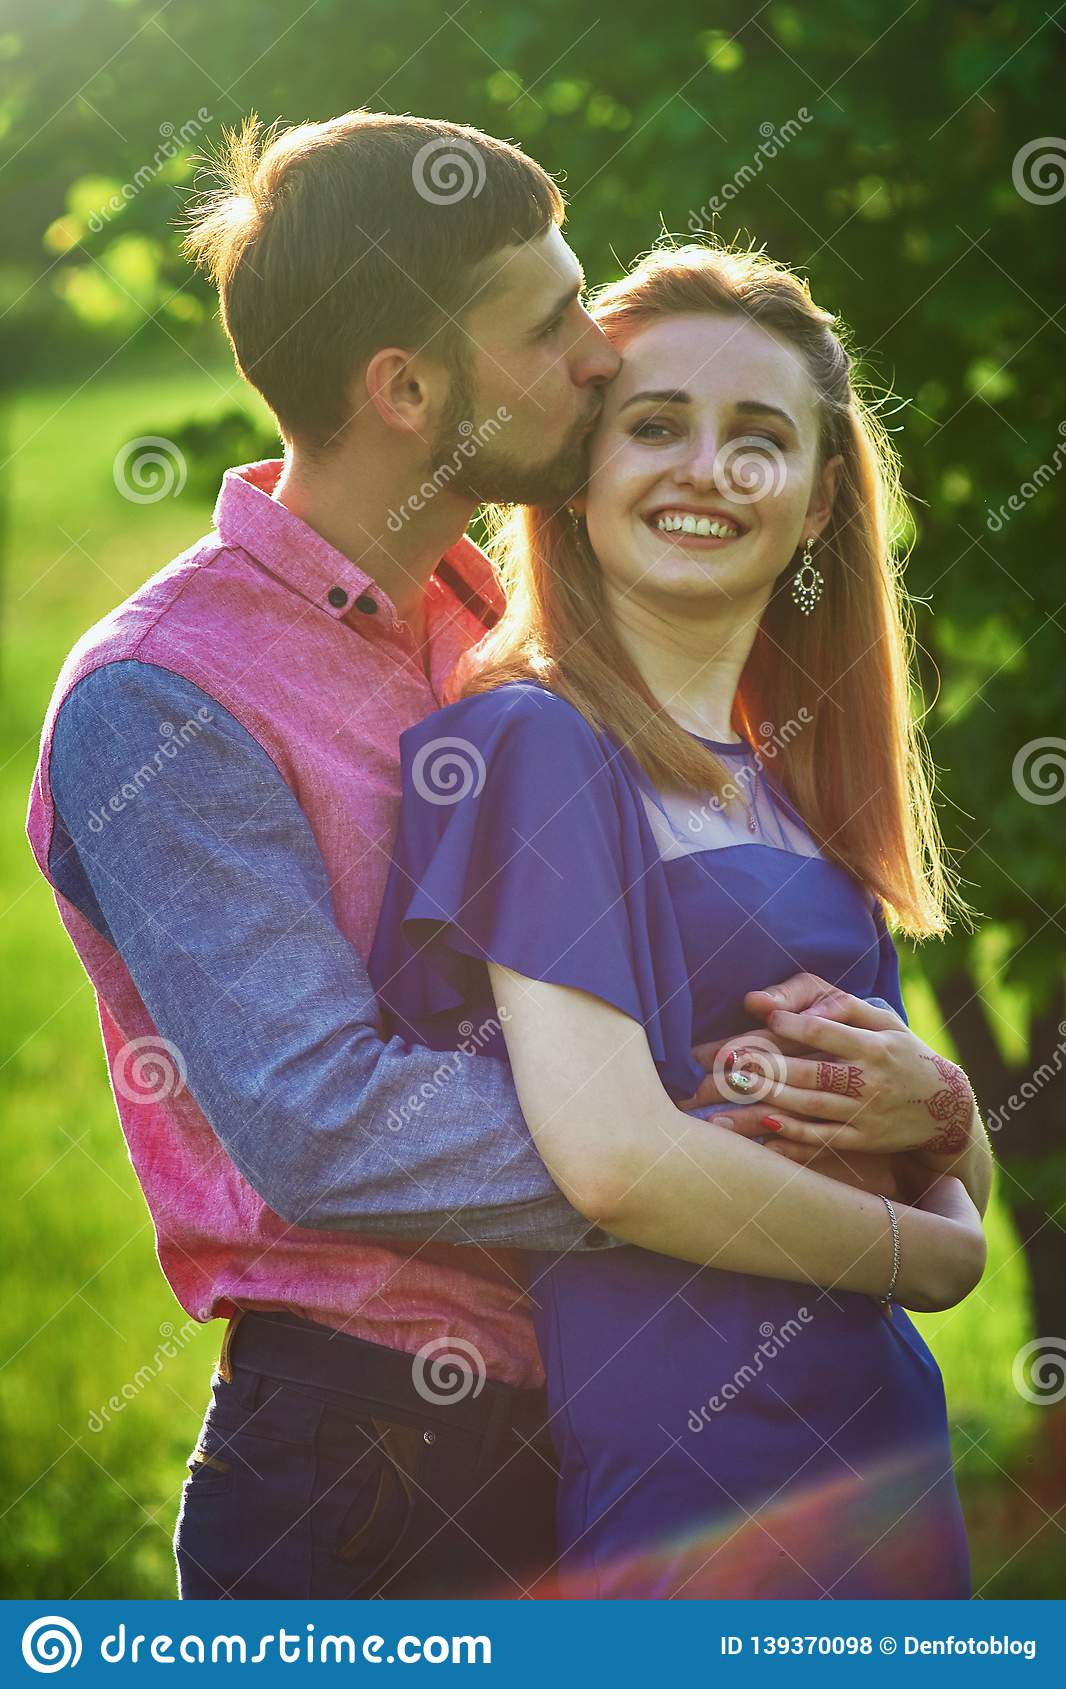 Married woman dating younger man